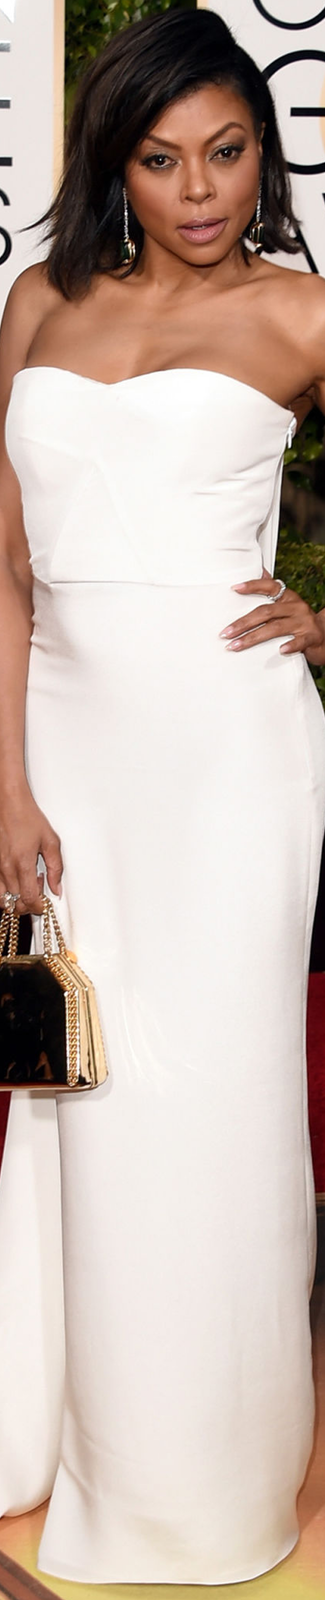 Taraji P. Henson 2016 Golden Globe Awards